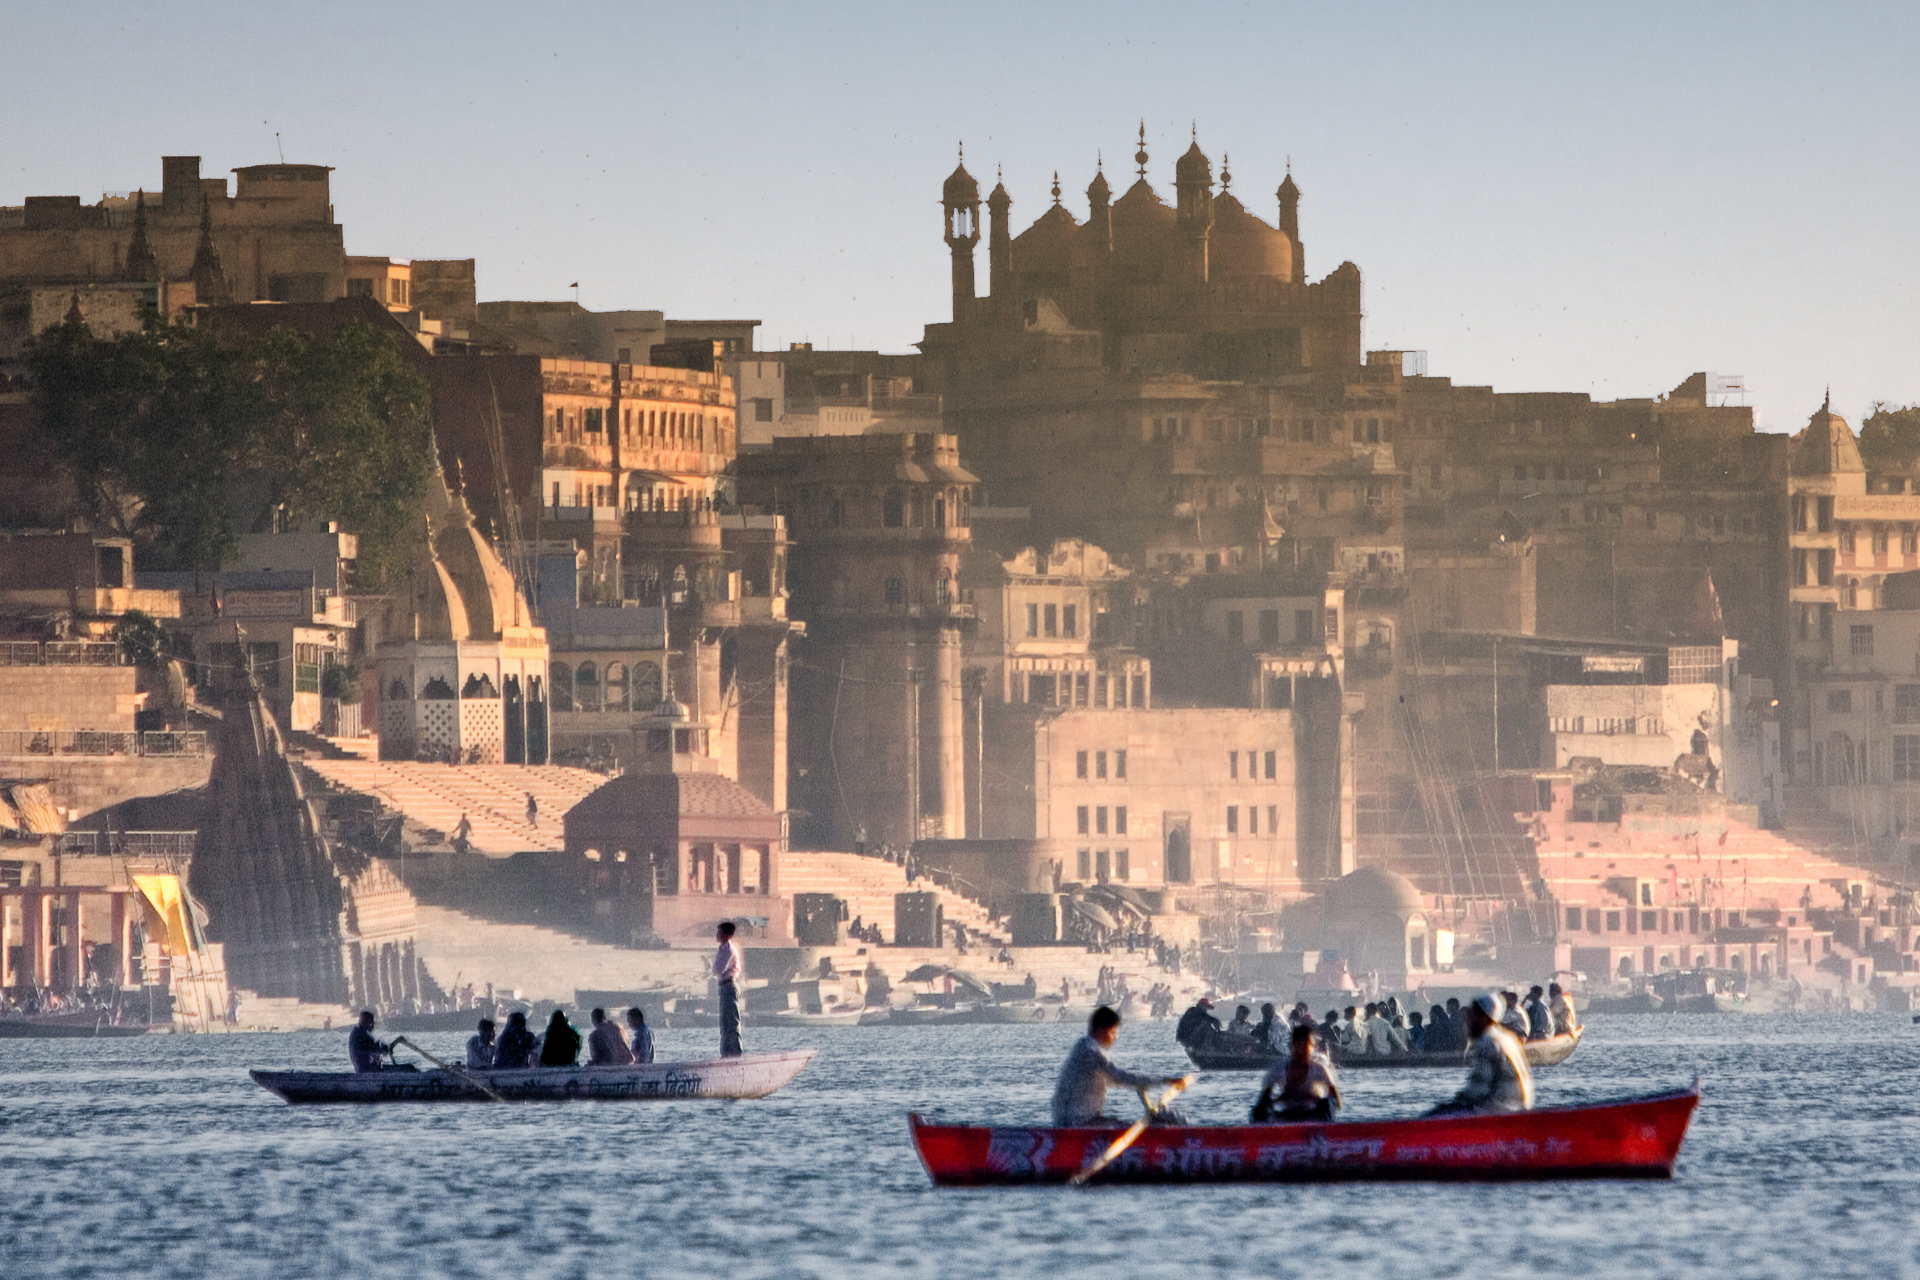 Viewing Varanasi from a boat on the Ganges reveals centuries of palaces and temples along the shores.